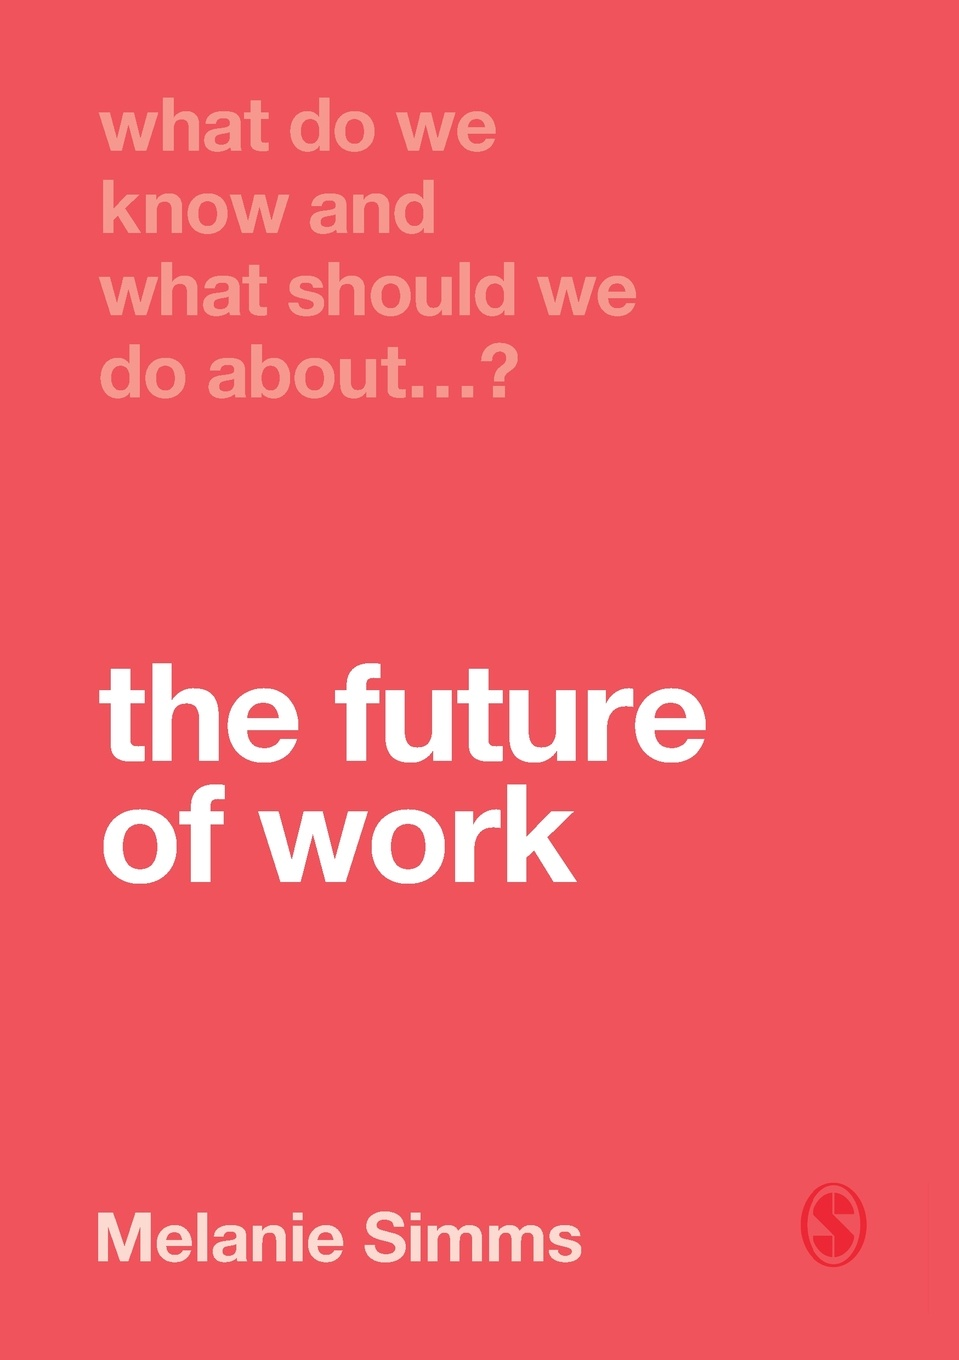 лучшая цена Melanie Simms What Do We Know and What Should We Do About the Future of Work?